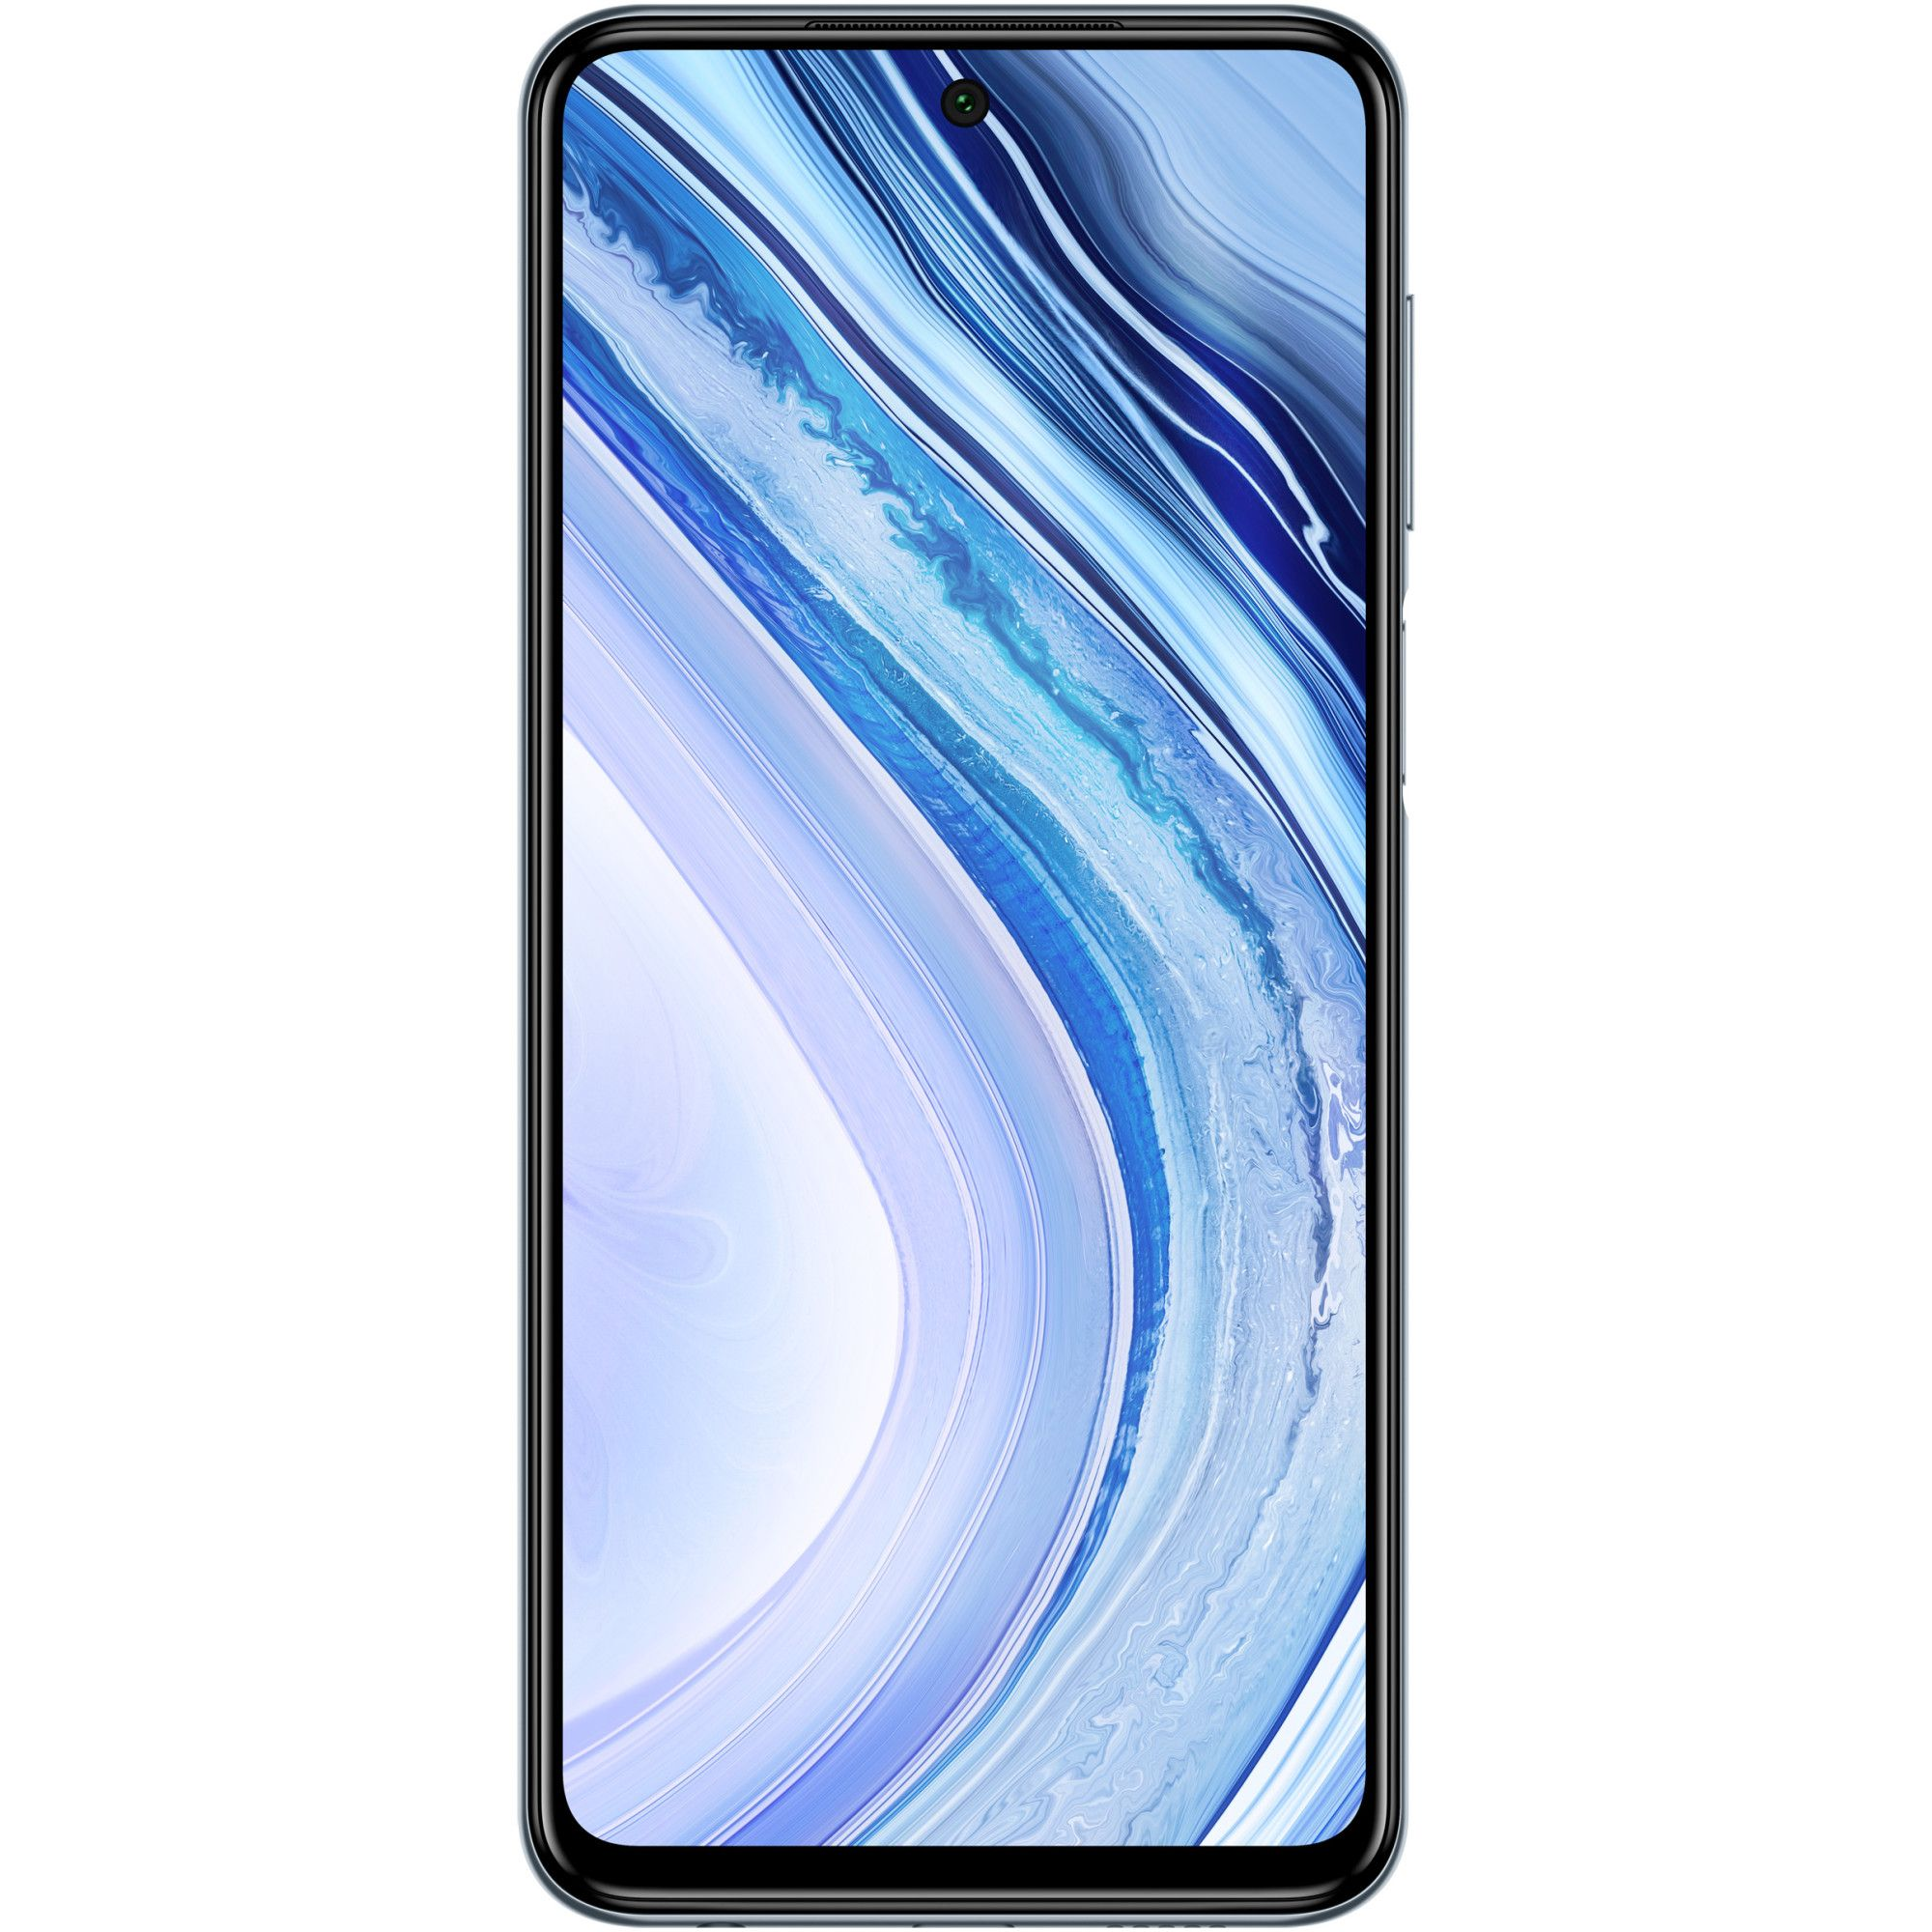 Telefon mobil Xiaomi Redmi Note 9 Pro, Dual SIM, 64GB, 6GB RAM, 4G, Interstellar Grey